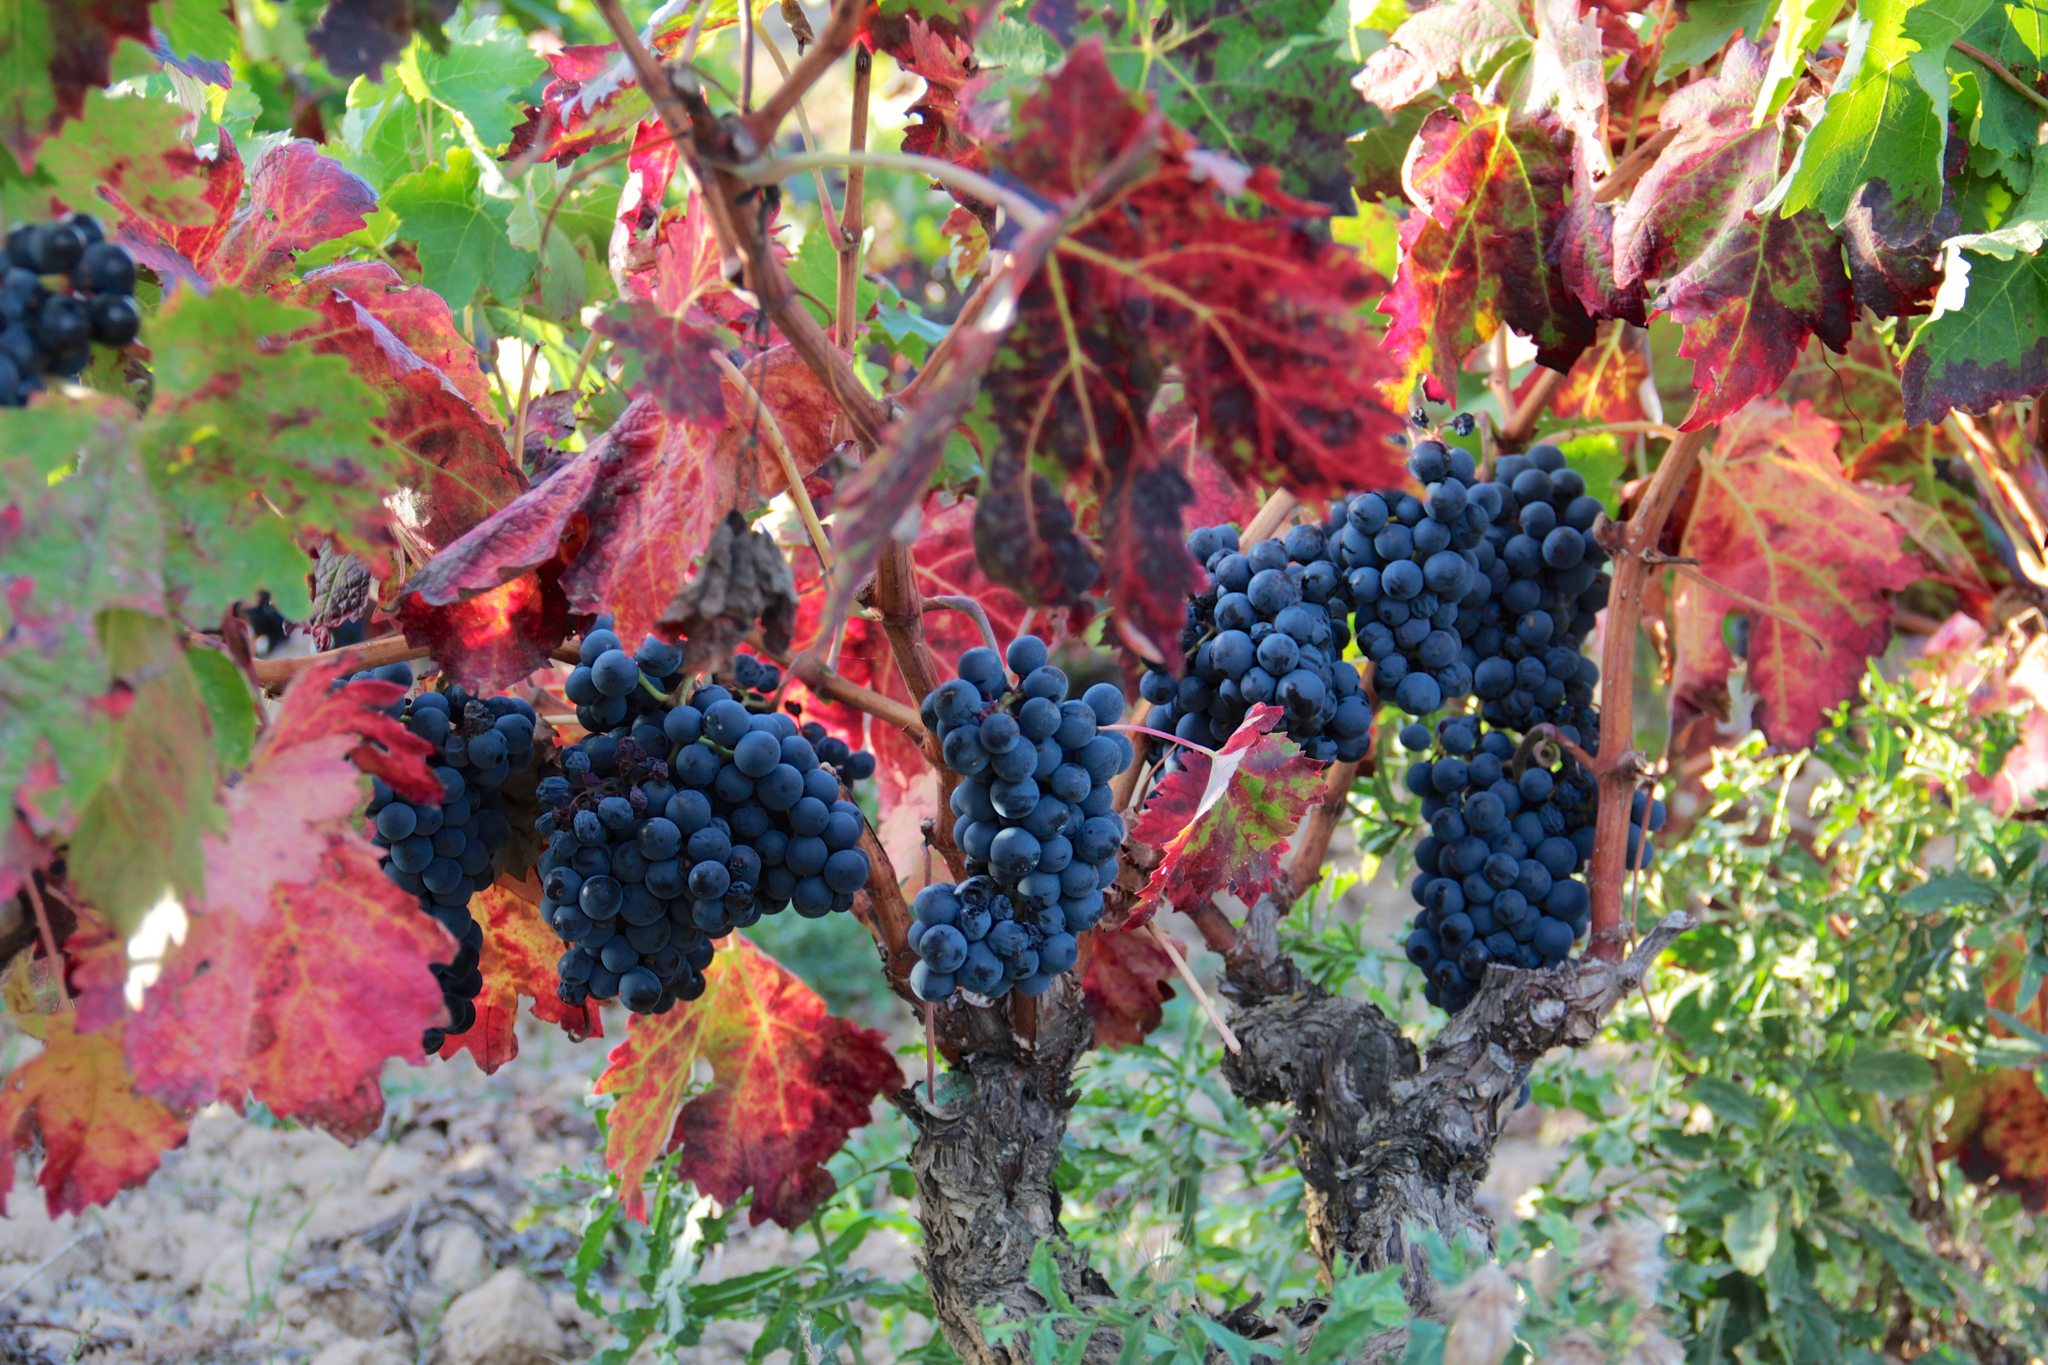 Tempranillo grapes. Flickr user ©Robert McIntosh / Creative Commons License.